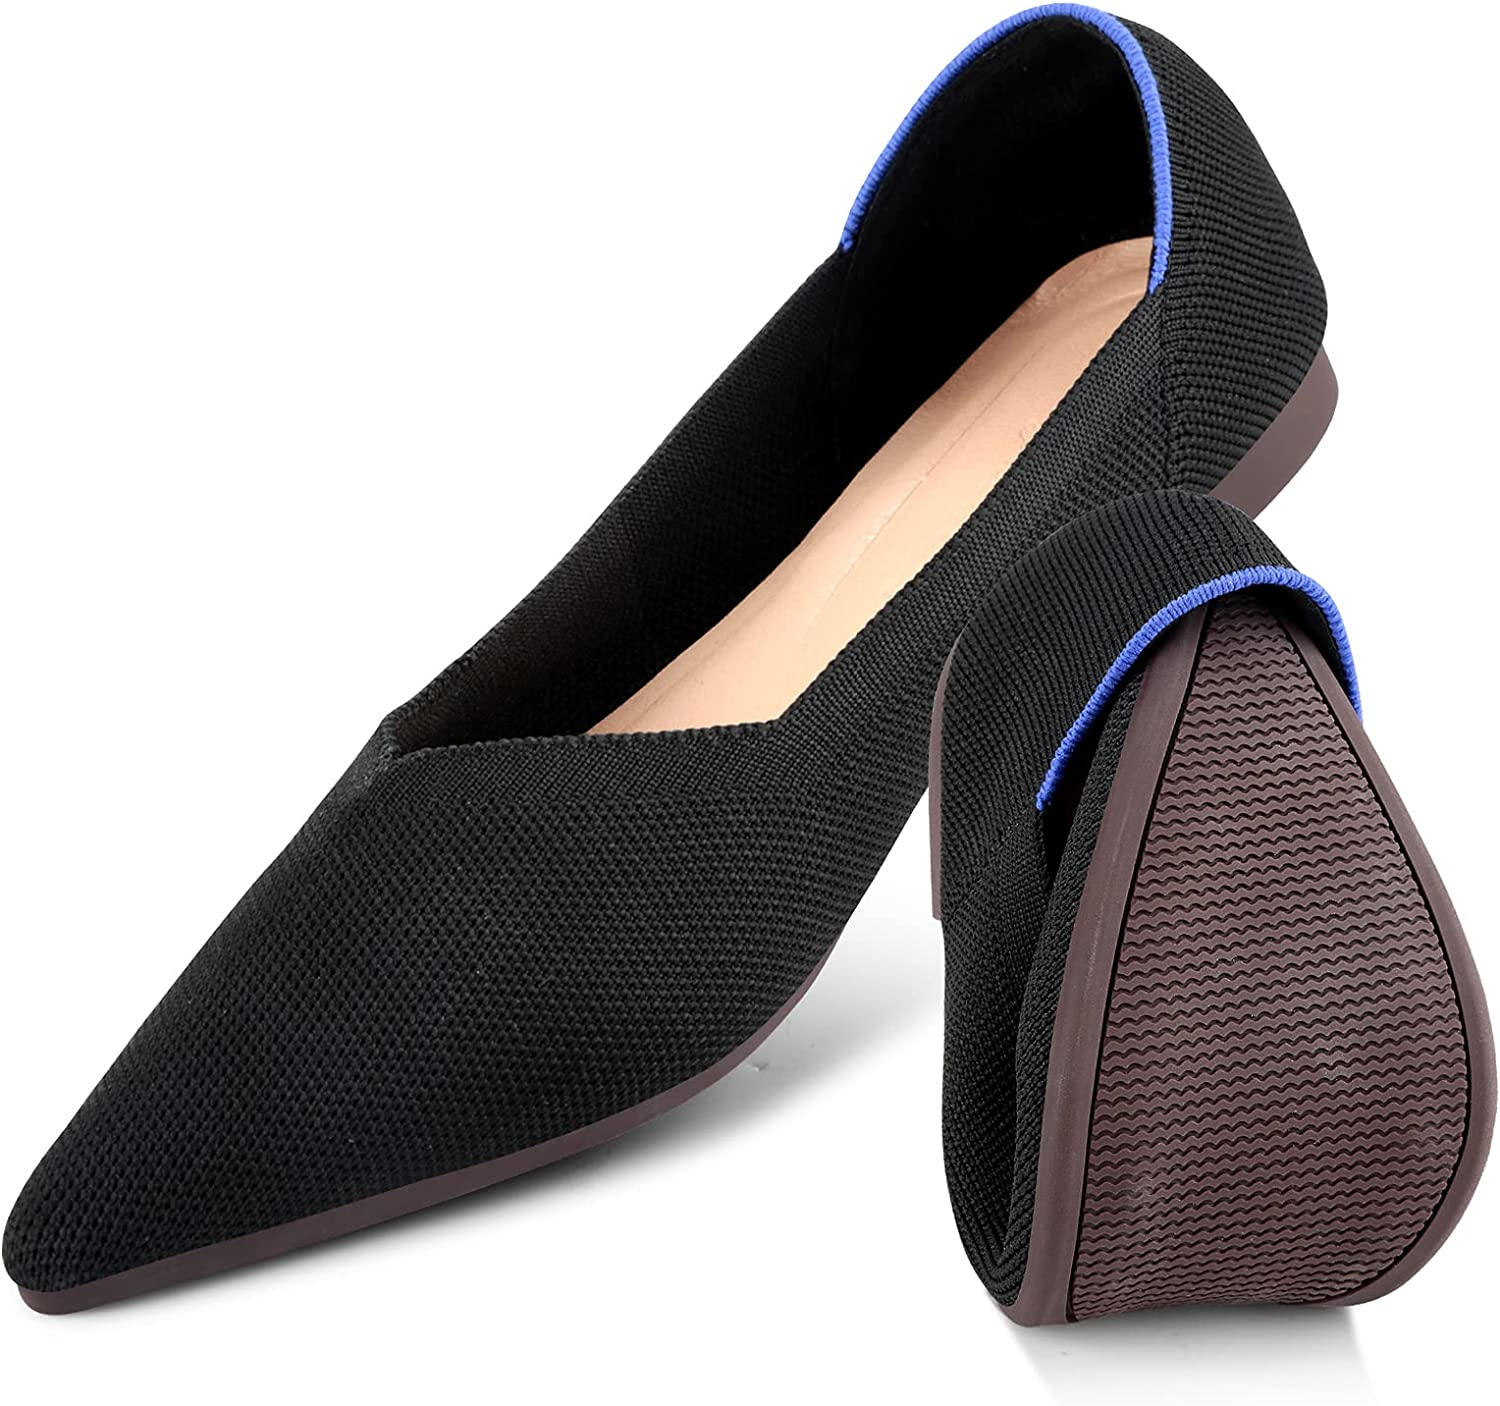 KUNWFNIX Women's Ballet Flats Foldable Loafer Comfort Knit Max 57% OFF Slip Indianapolis Mall